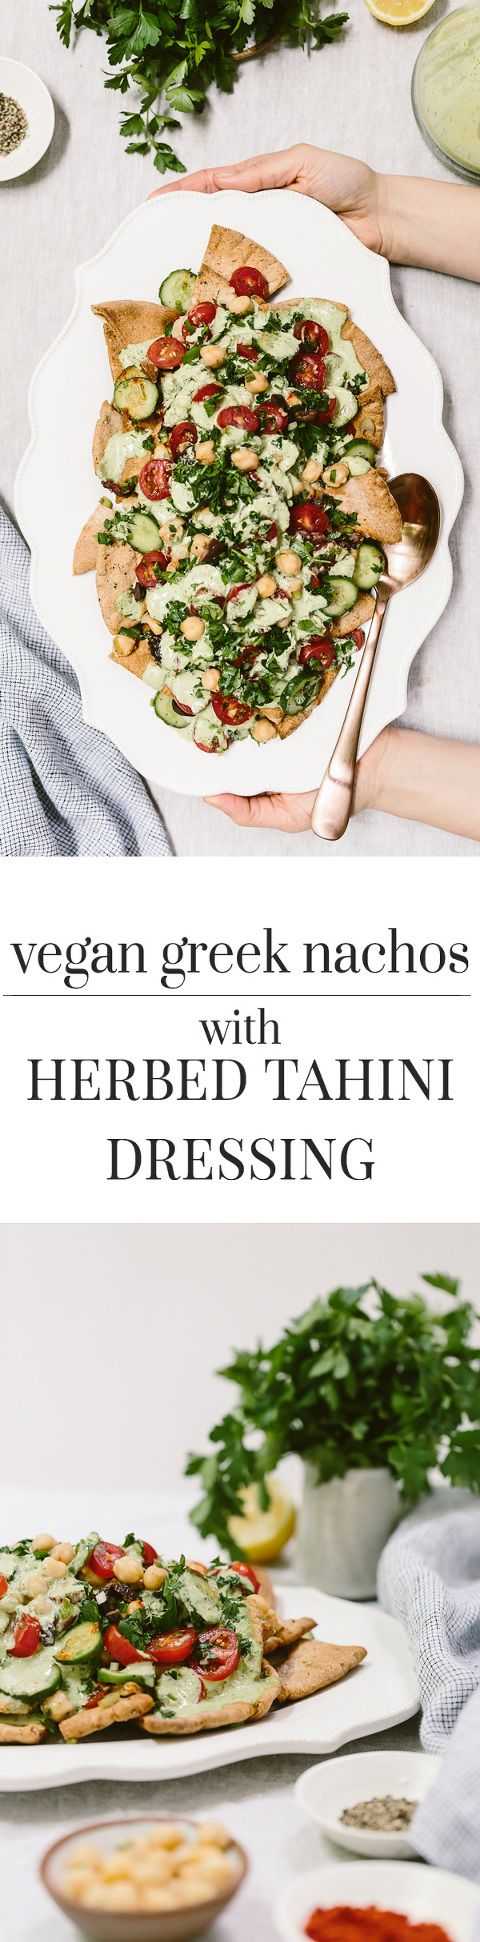 Vegan Greek Nachos With Herbed Tahini Dressing